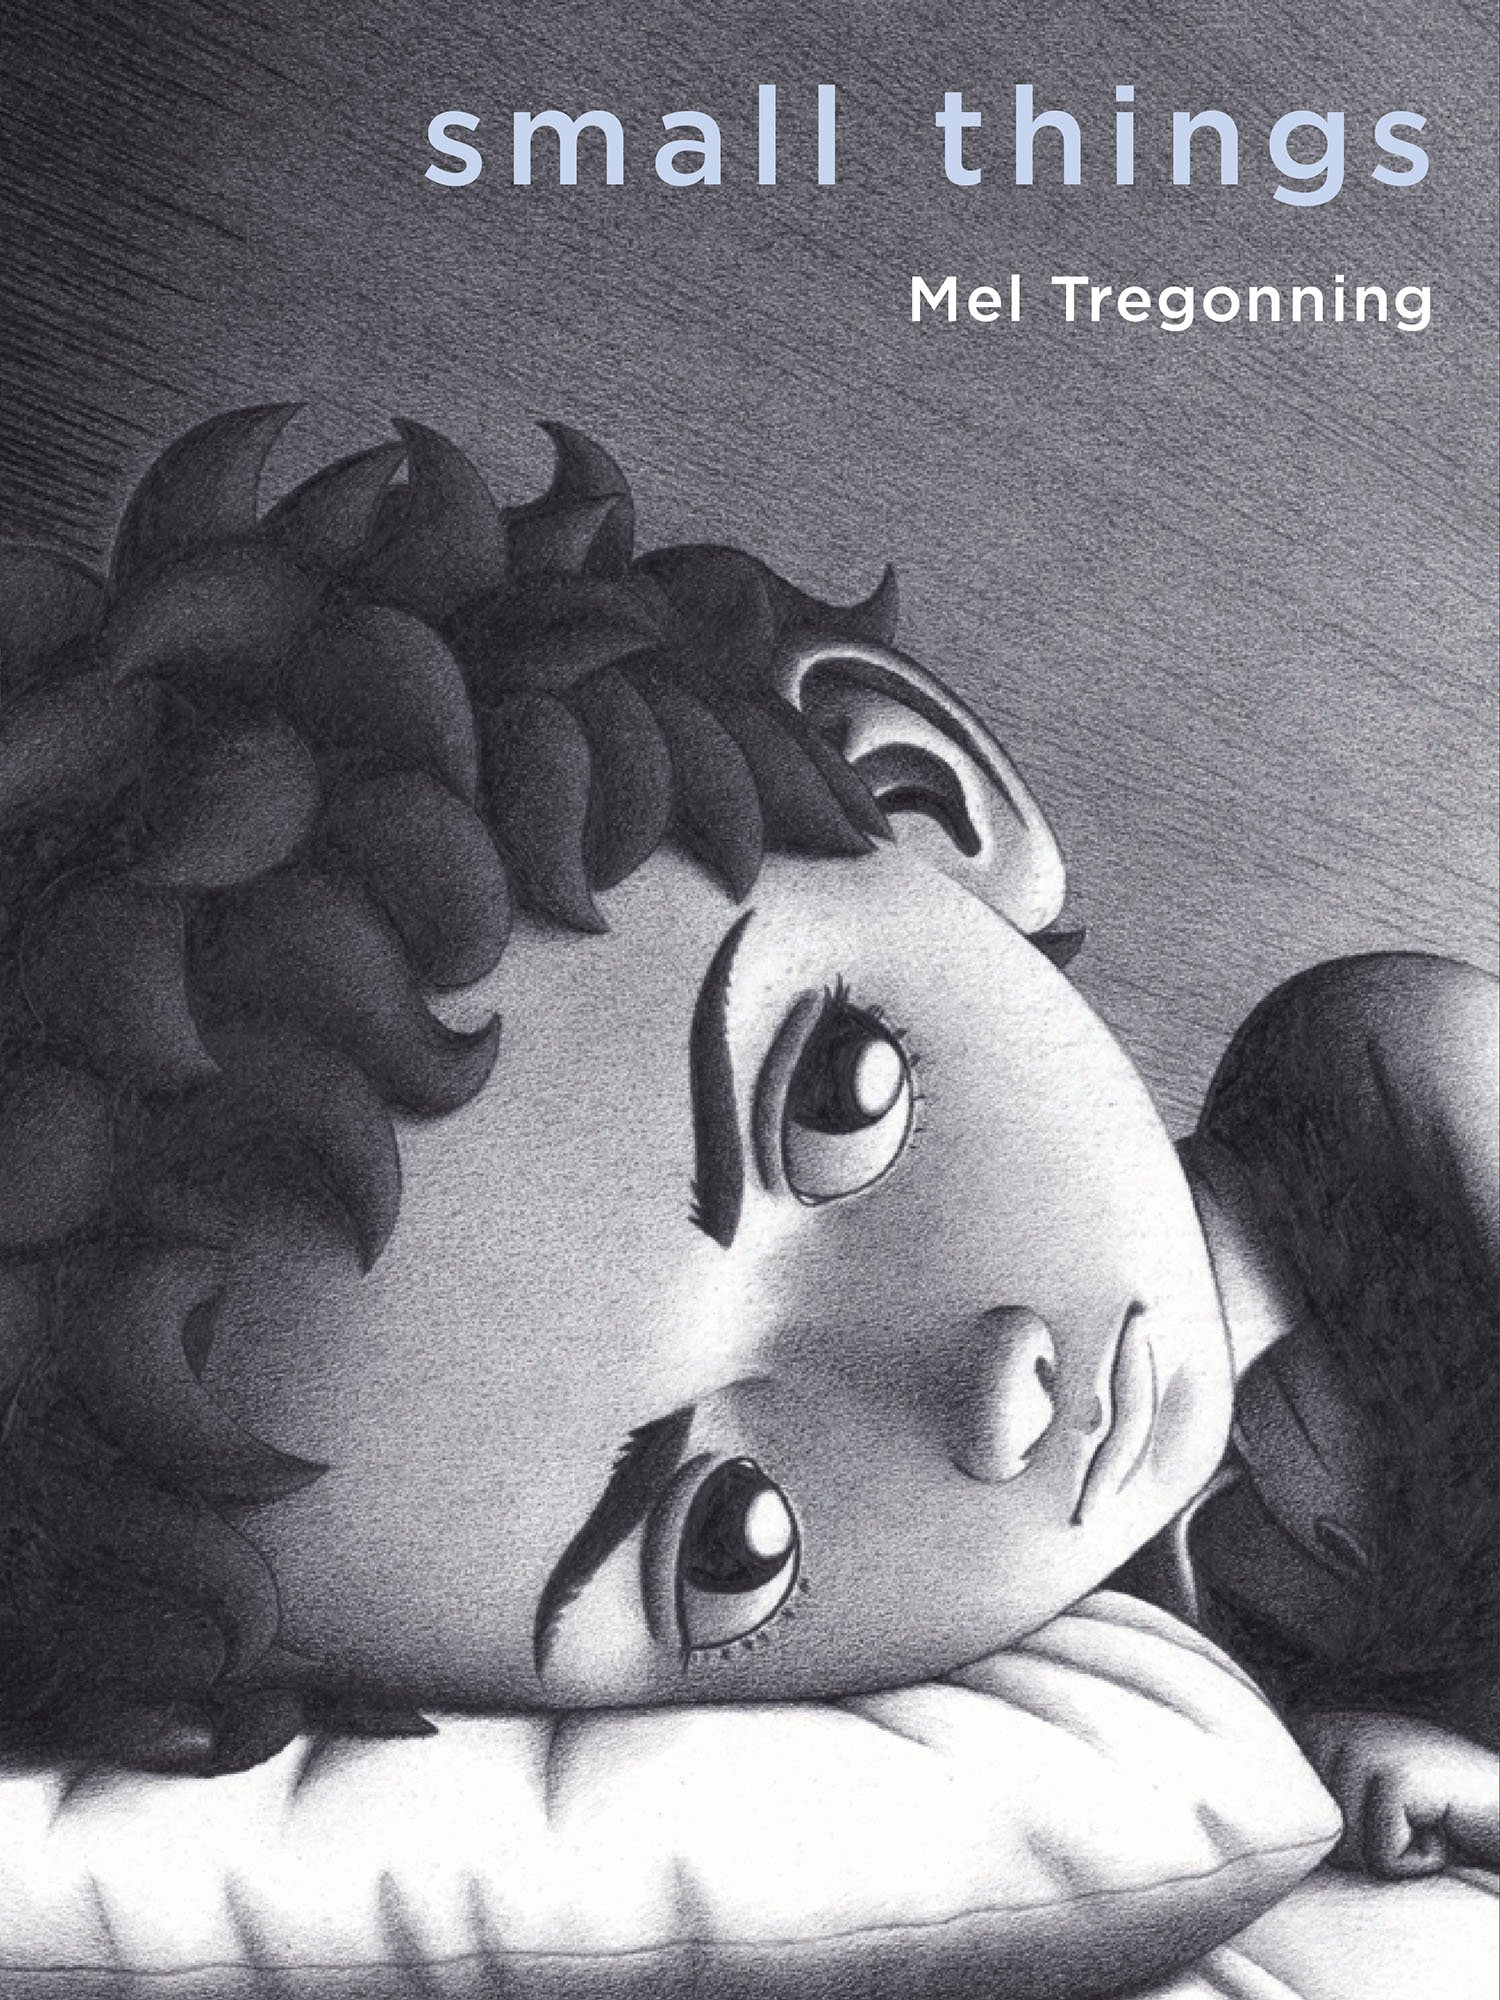 Small Things by Mel Tregonning | SLJ Review